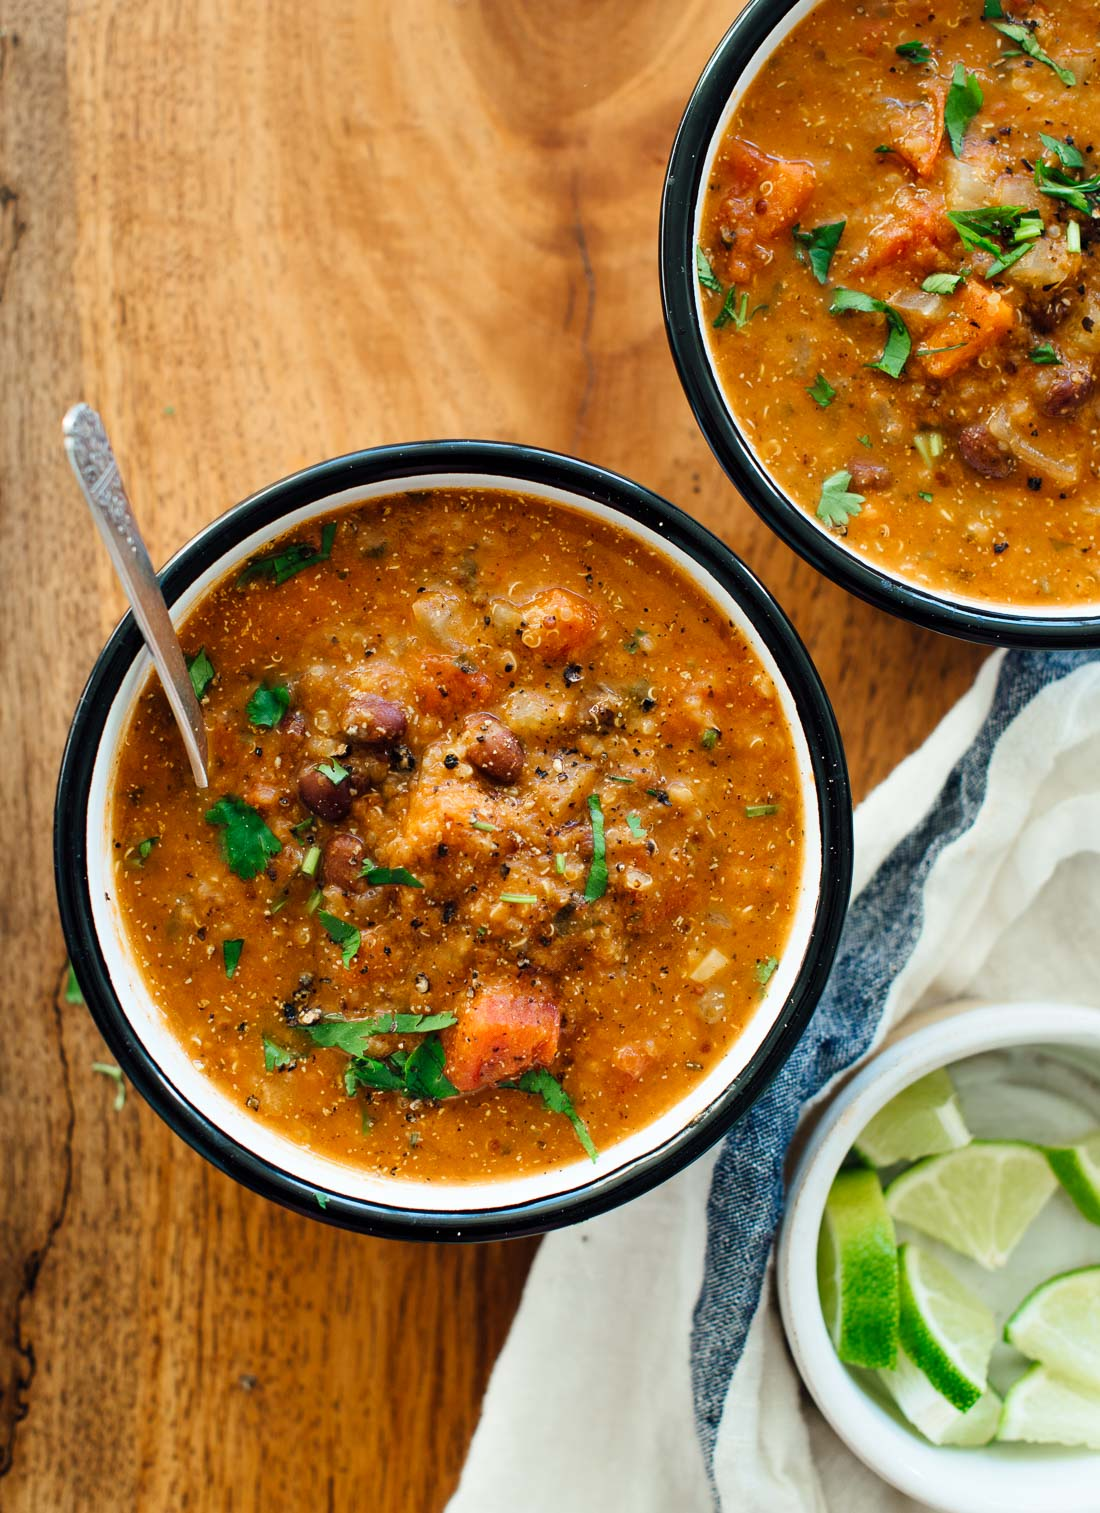 Mexican food archives good food channel delicious healthy food easy making mexican quinoa stew forumfinder Images